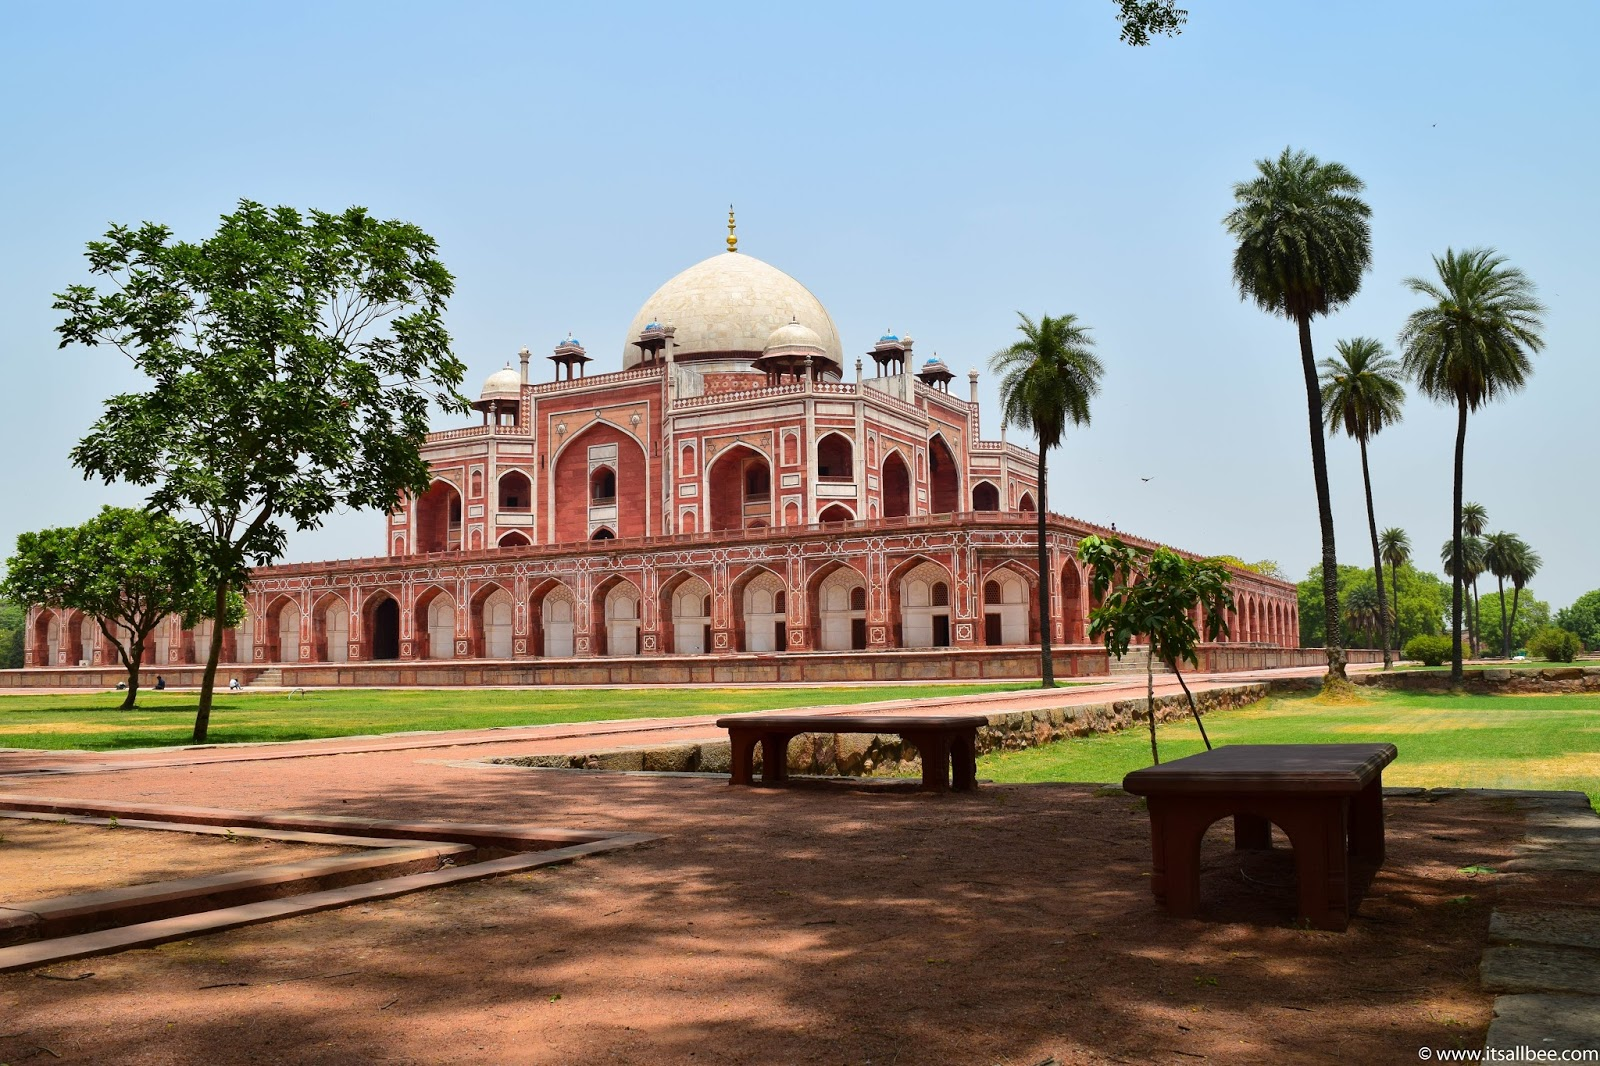 India - places to visit in Delhi with friends - Humayun's Tomb